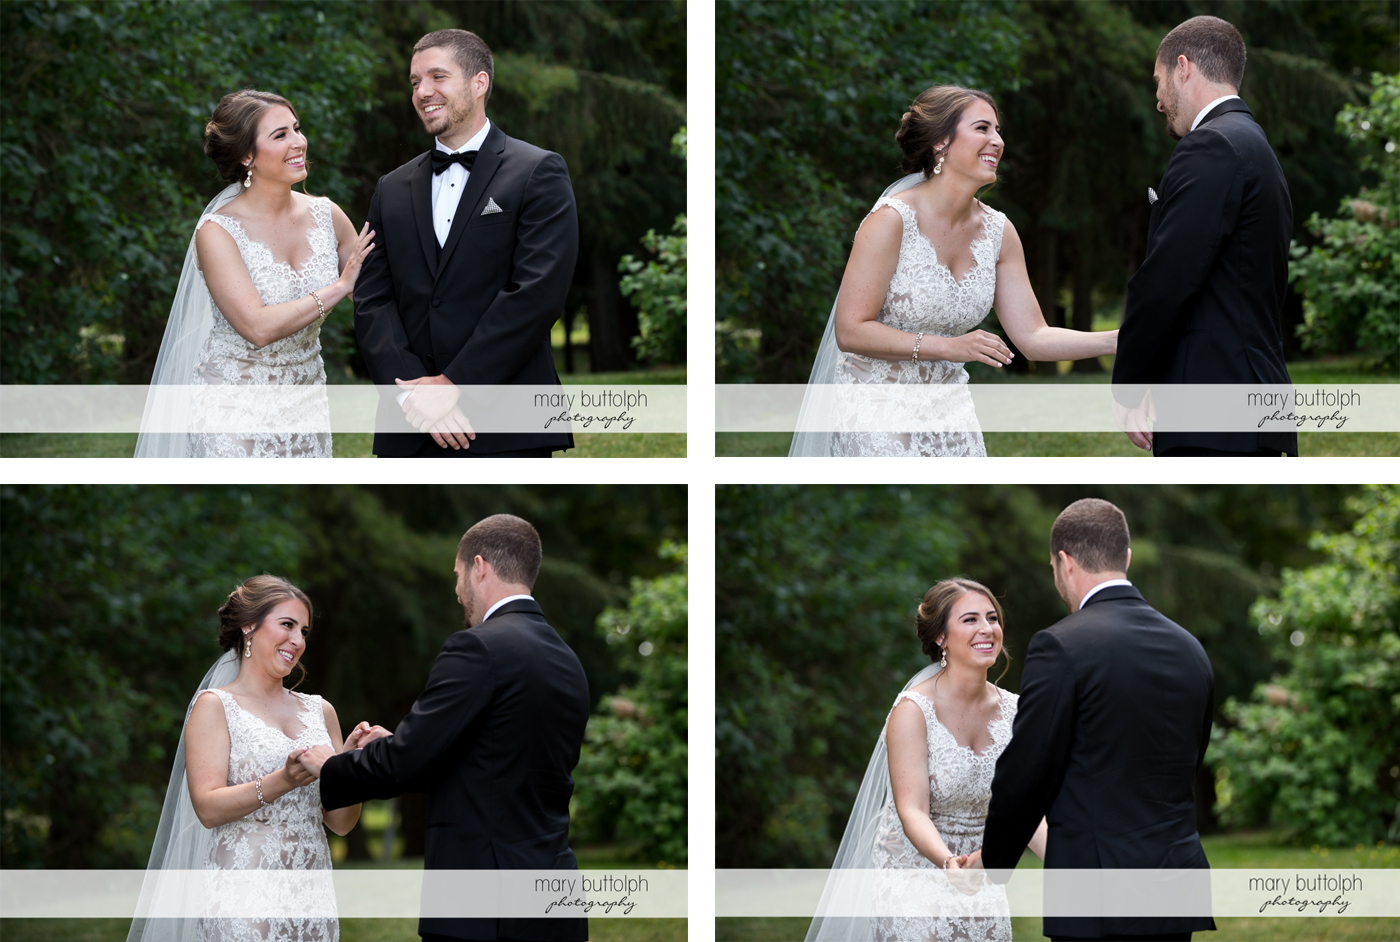 Couple share a light moment in the garden at The Lodge at Welch Allyn Wedding